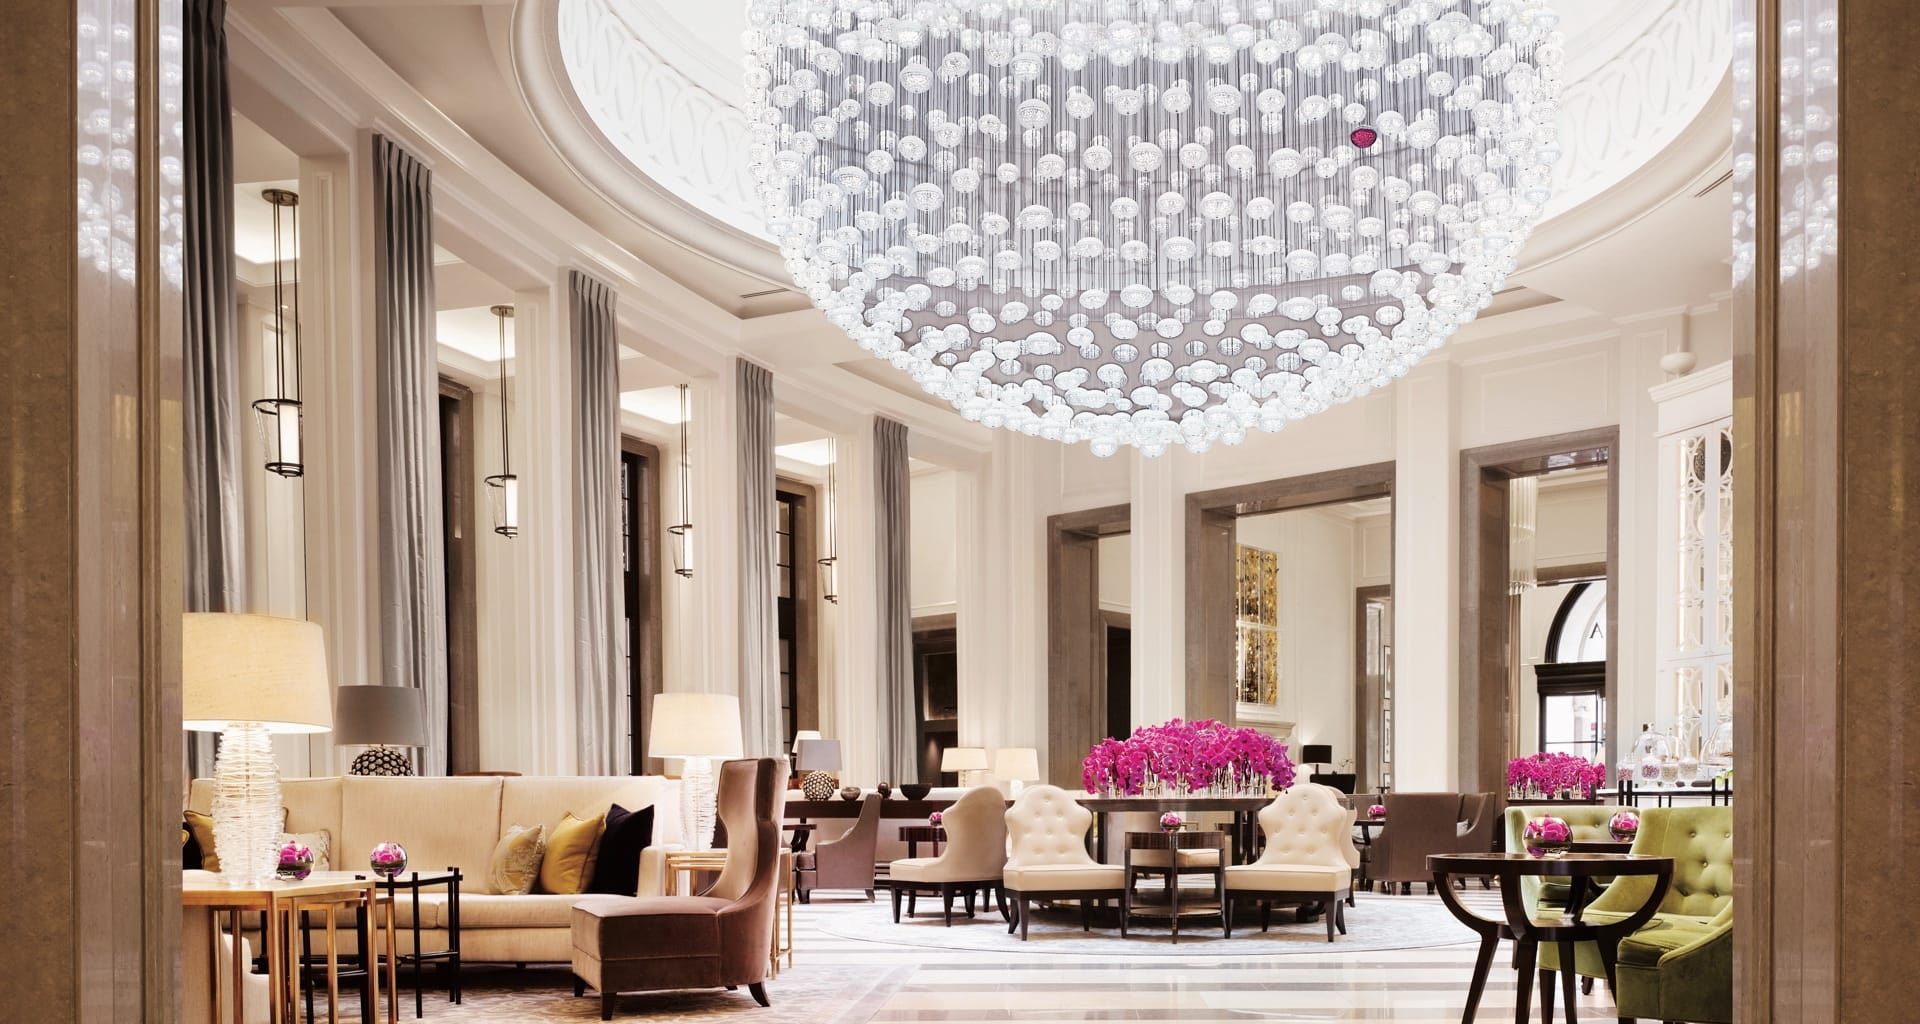 Lobby of Corinthia in London